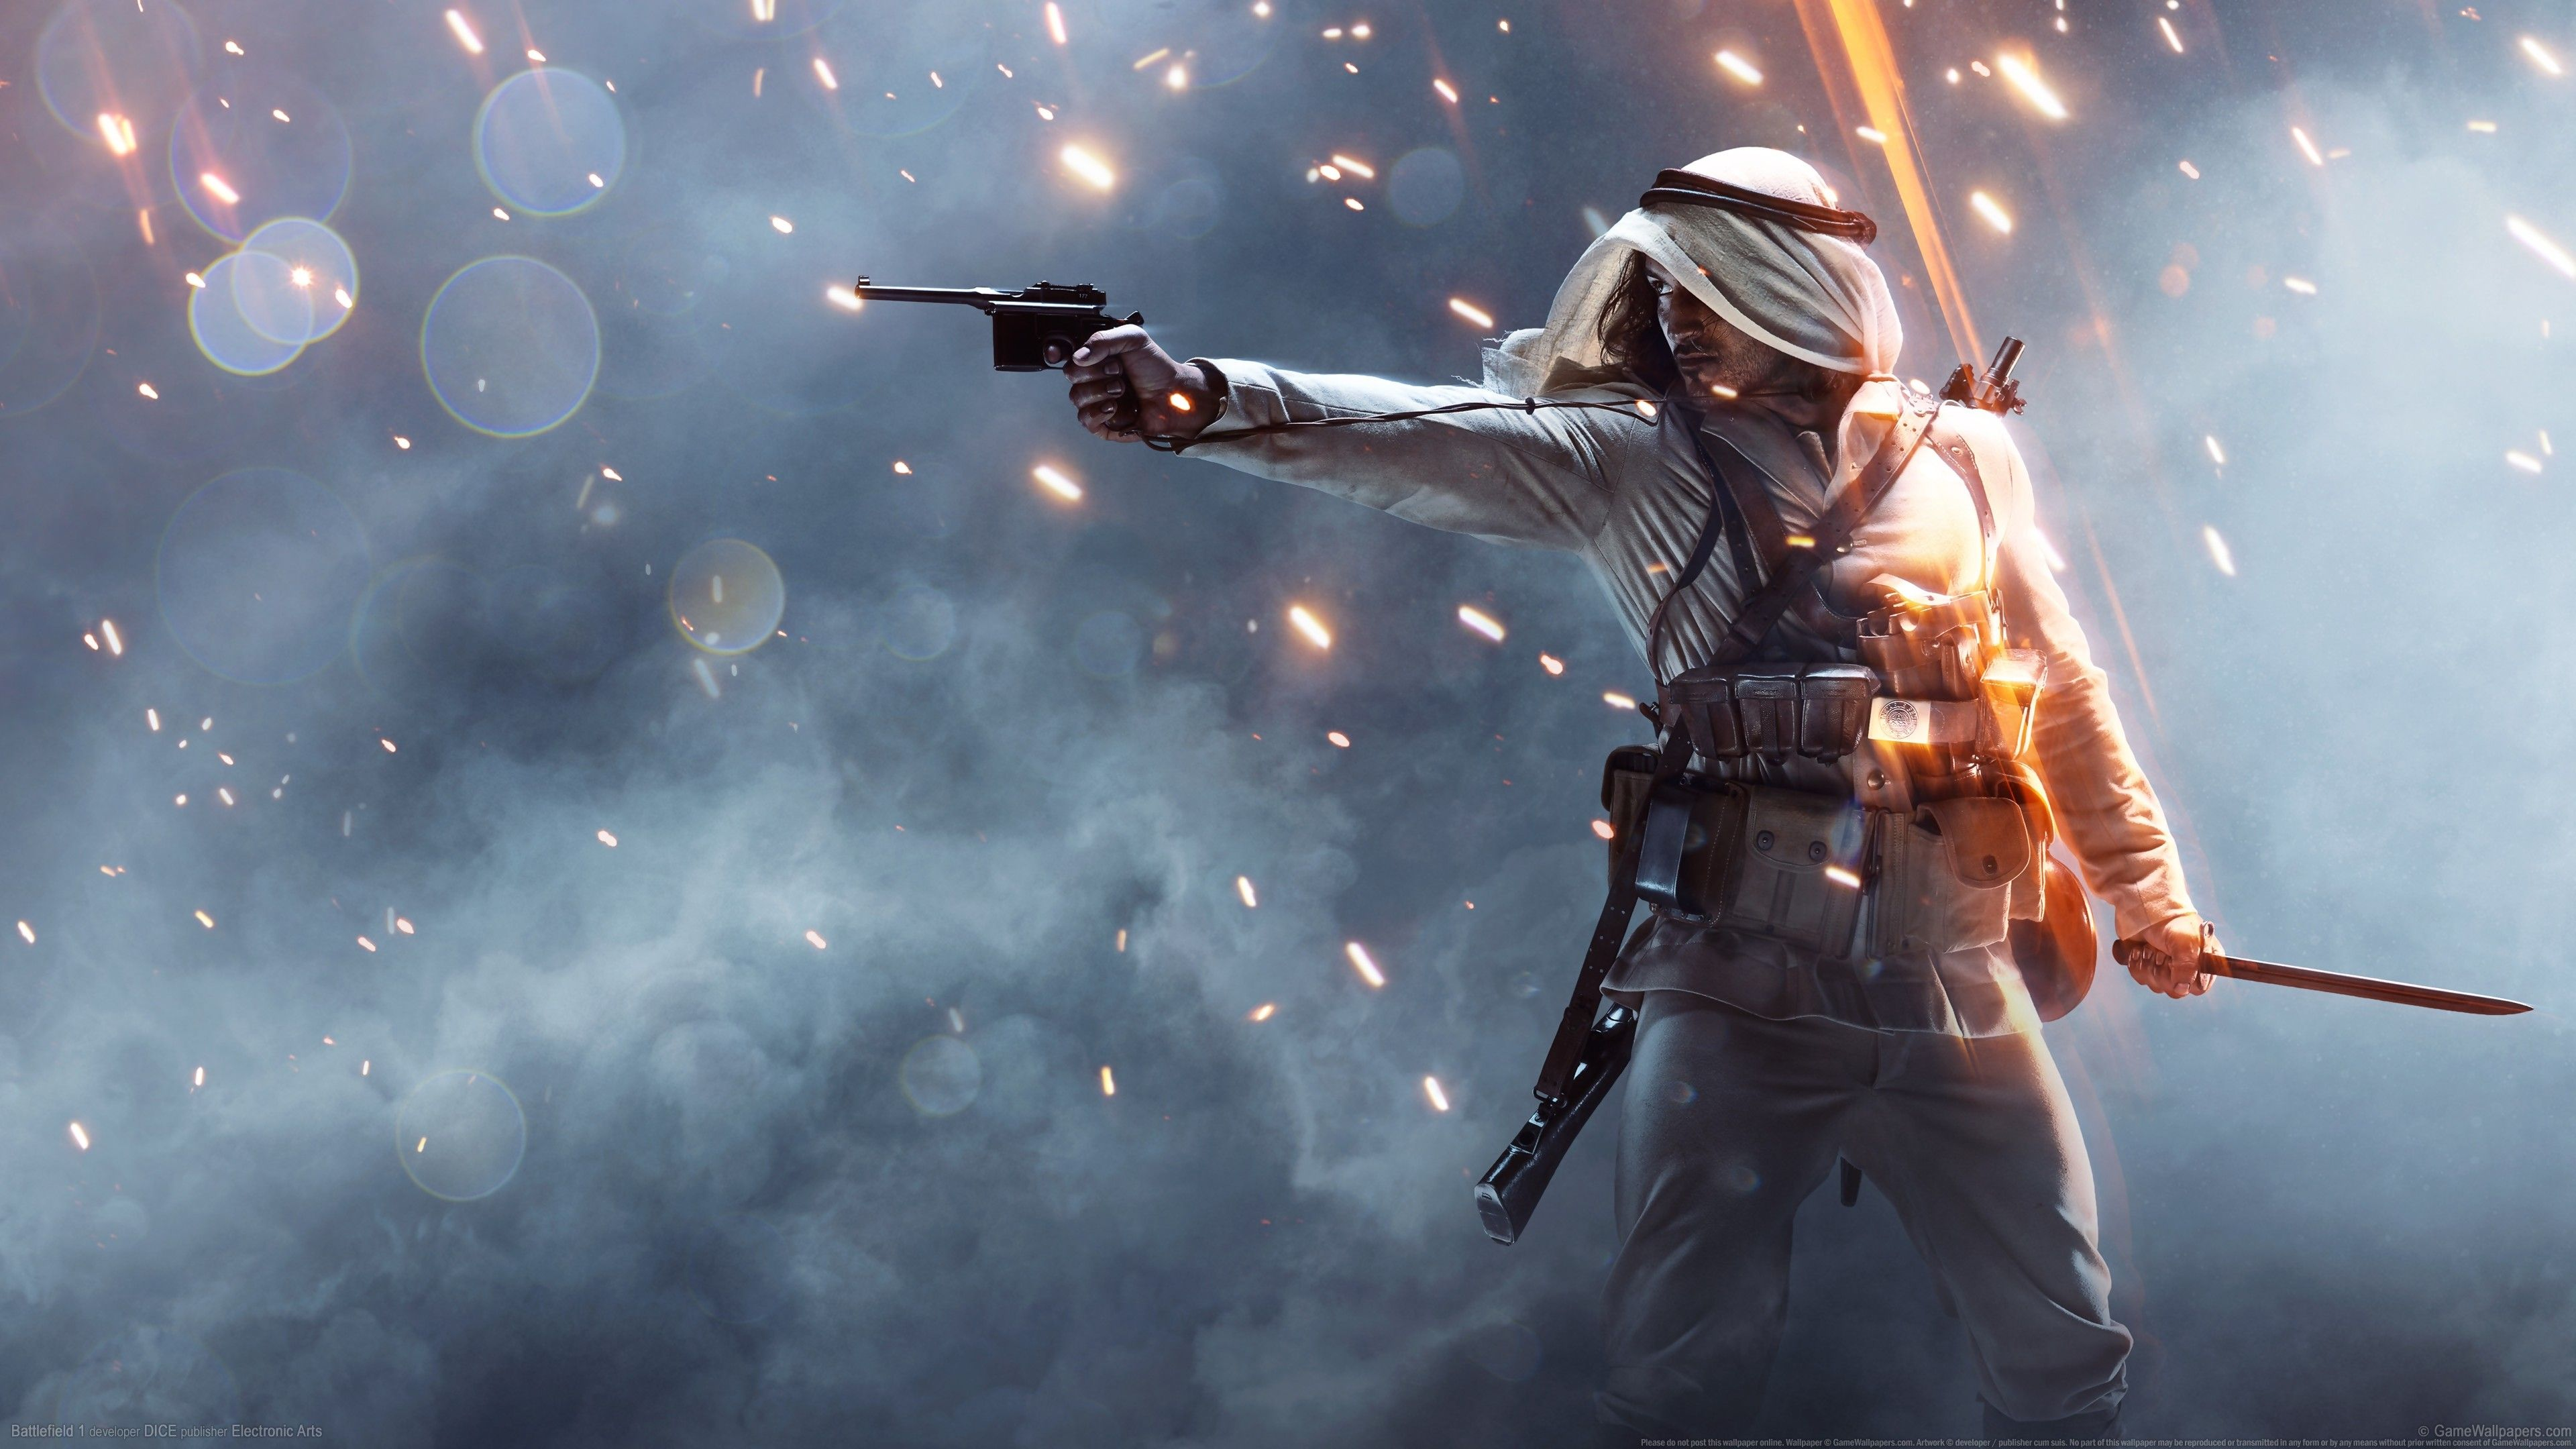 4k Bf1 Wallpapers Top Free 4k Bf1 Backgrounds Wallpaperaccess